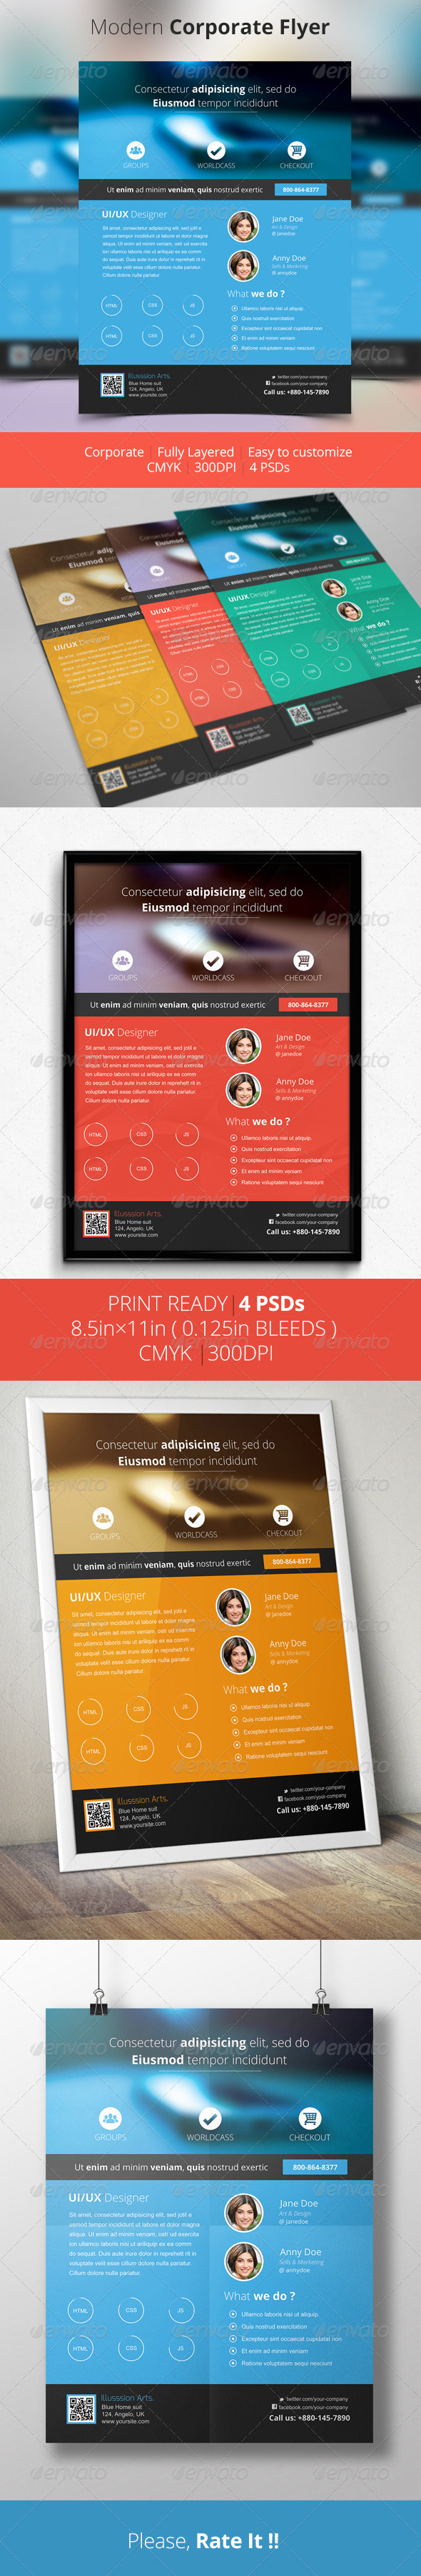 GraphicRiver Modern Corporate Flyer 6292687